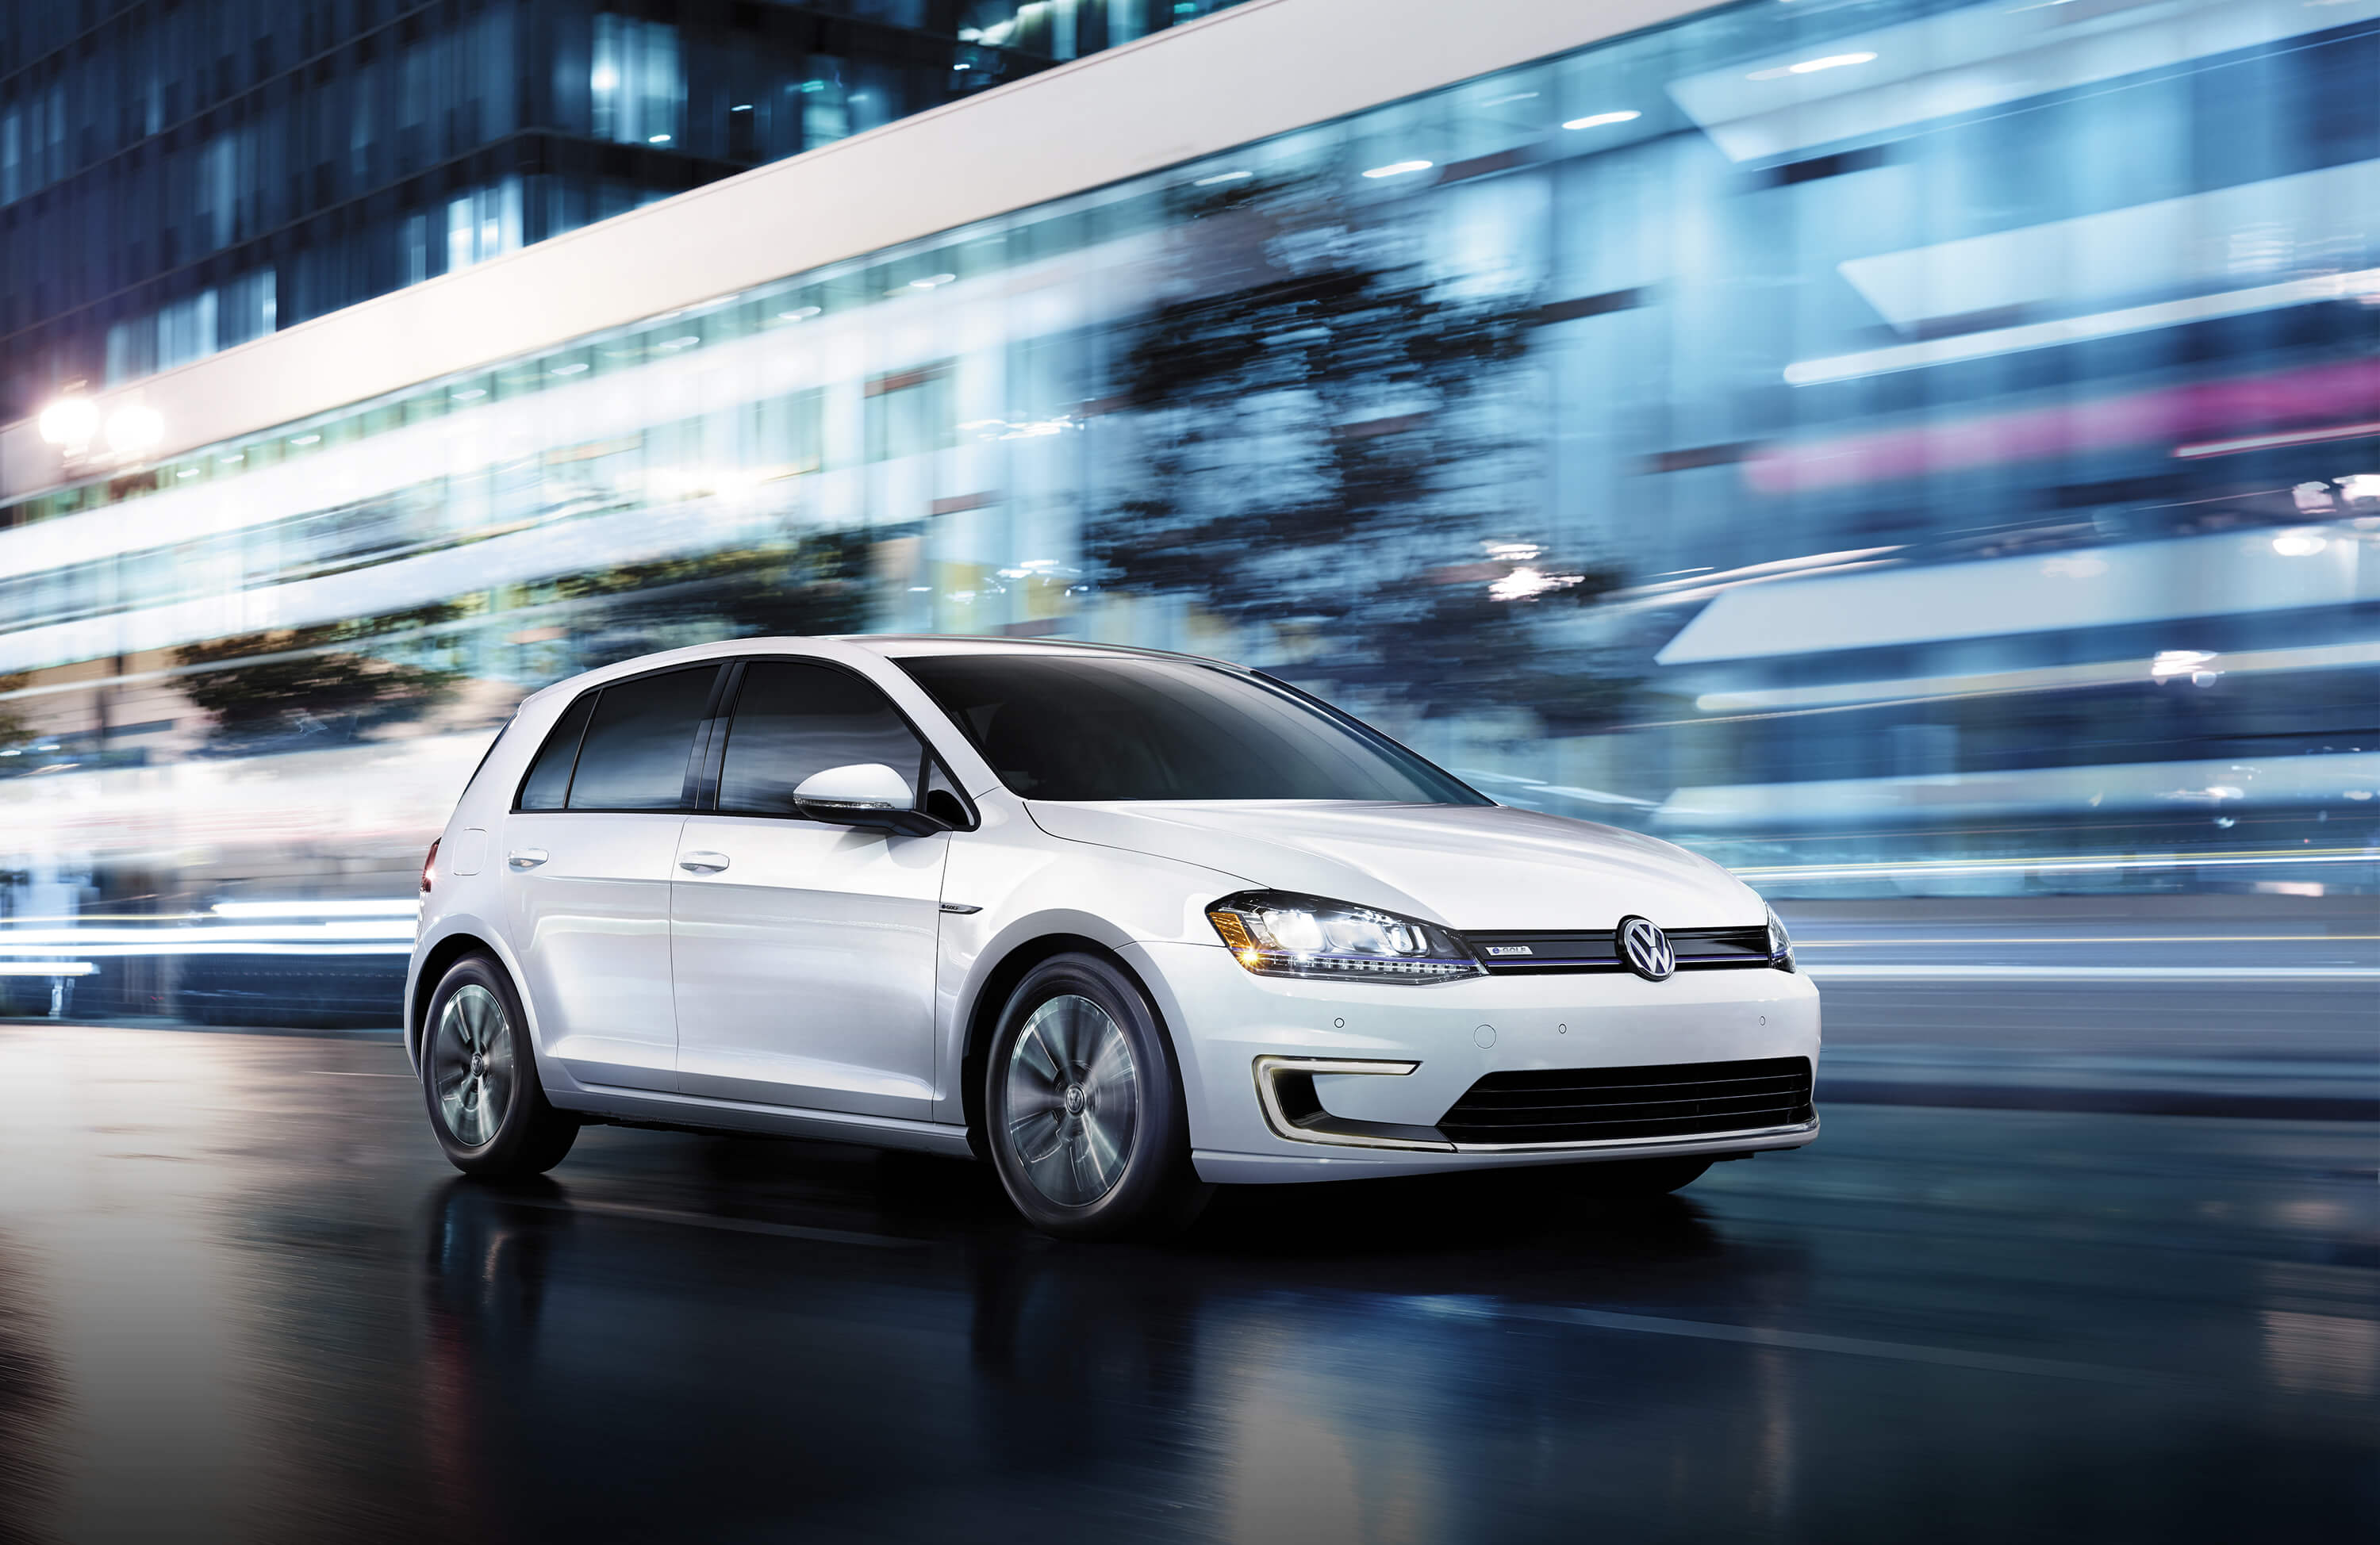 Volkswagen Lease Deals >> Vw E Golf Buy Price Lease Deals For Sale Sioux Falls Sd